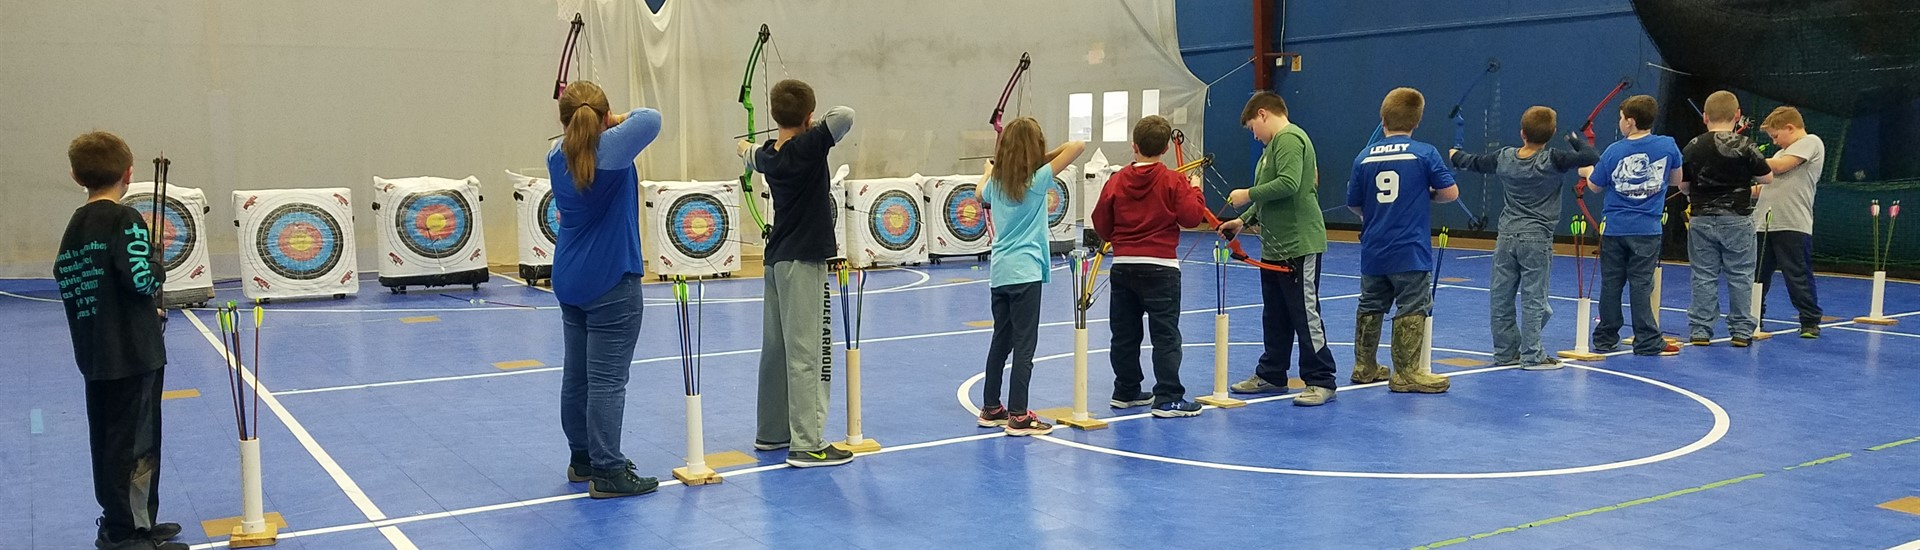 Addison Elementary Archery Team practices in preparation for the Regional Tournament this Spring.